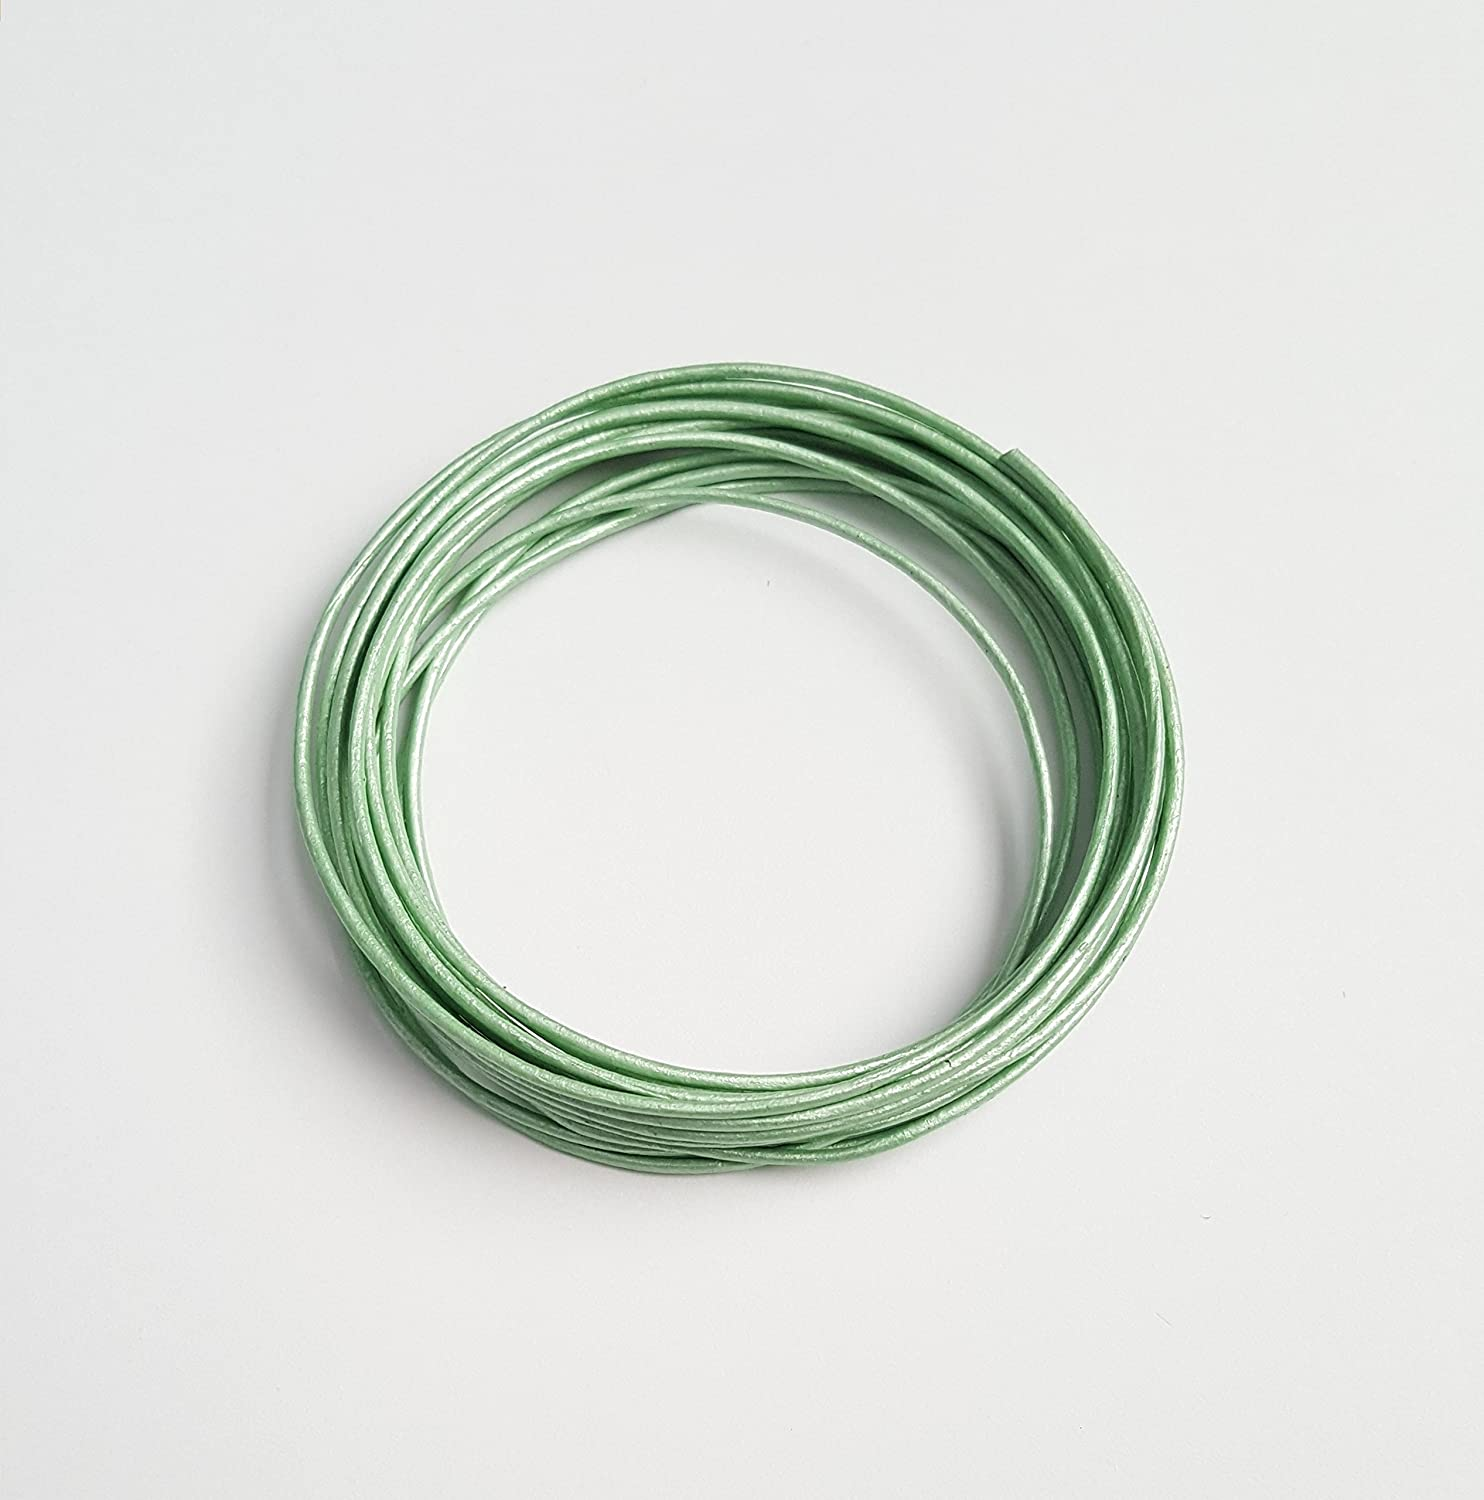 Round Leather Cord Metallic Light Green 1mm 10meters Spool Is Not Included